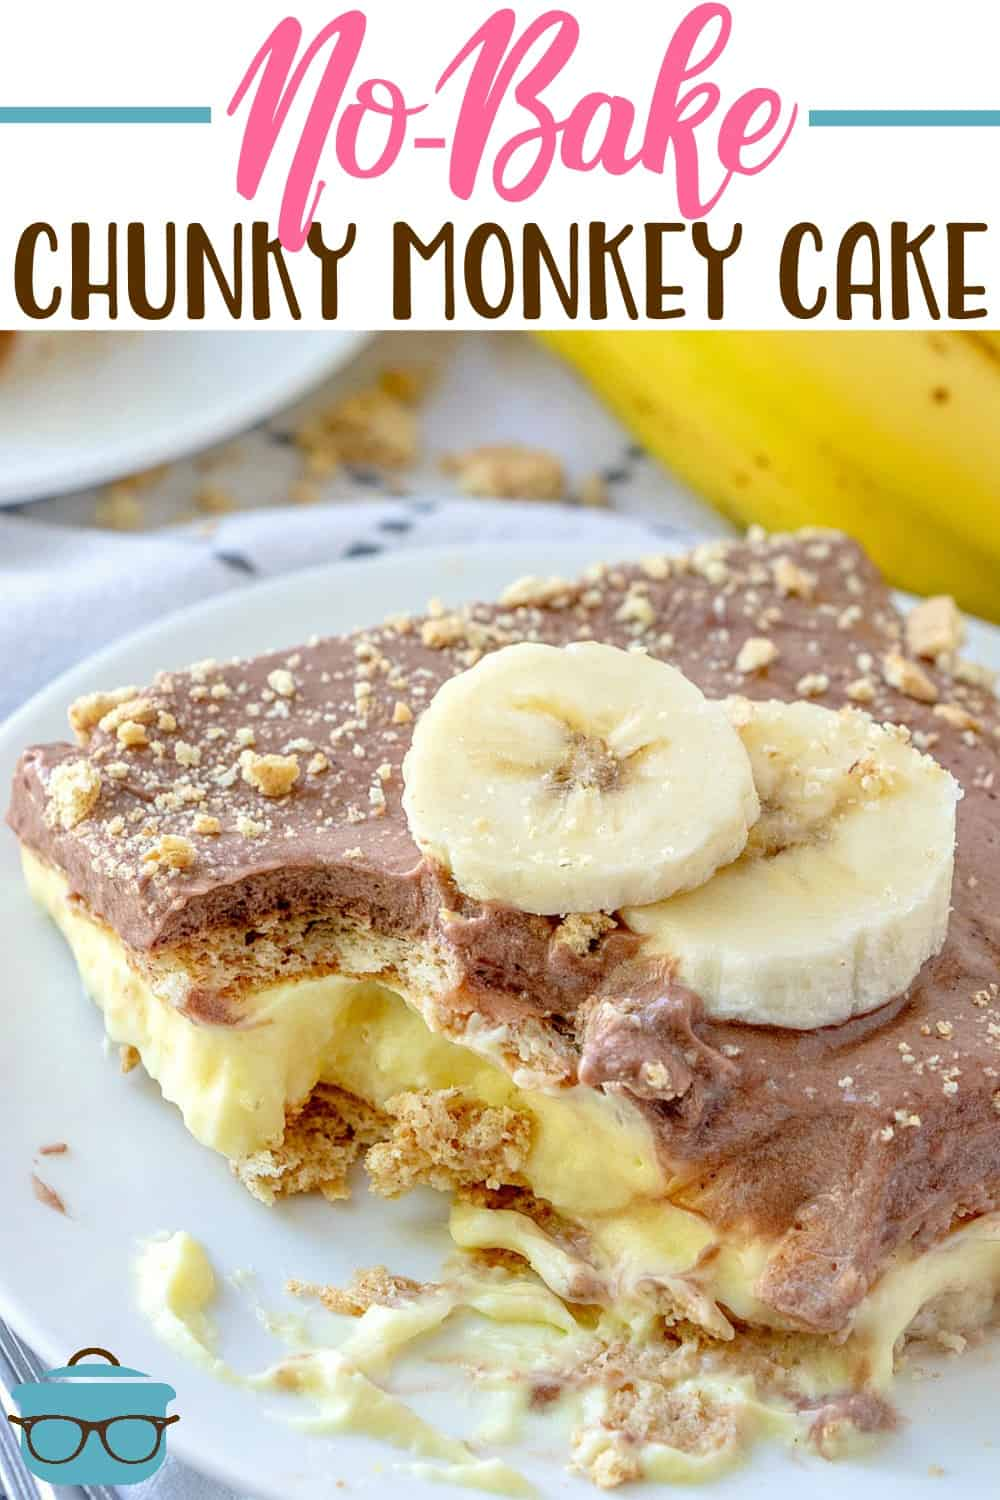 No-Bake Chunky Monkey Cake is a dessert with layers of graham crackers, banana, chocolate pudding and vanilla pudding. #nobake #dessert